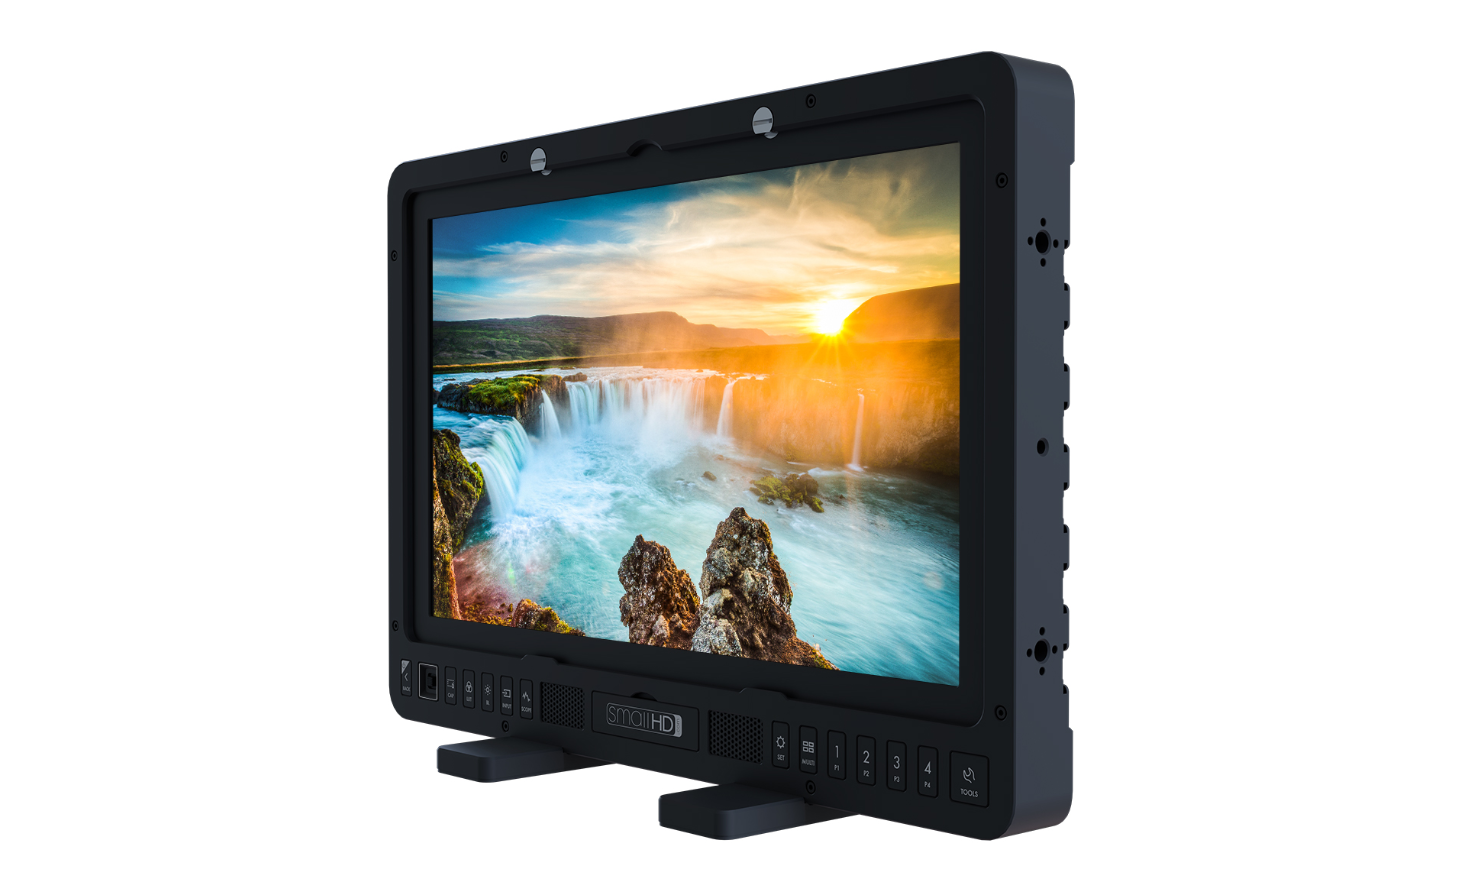 SmallHD 1703 P3X 17-inch Production Monitor with Daylight Visibility - Chrome 2018-11-14 오전 11_03_11 (2)